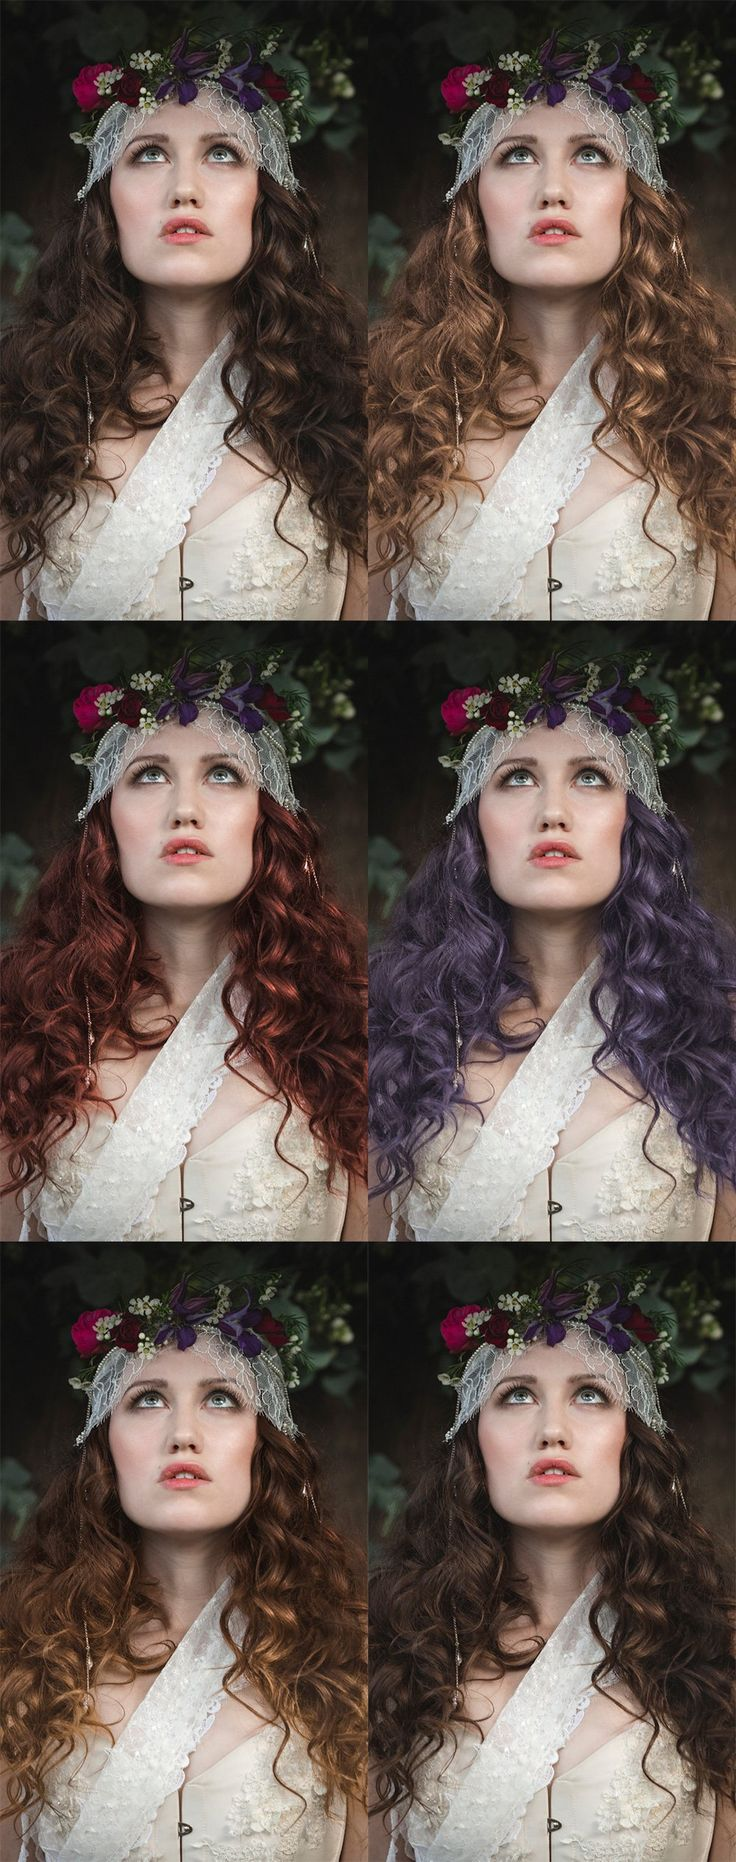 Photographer Tigz Rice demonstrates how to use Photoshop to change hair colour, lighten hair colour, tint hair colour and create Ombre hair effects in this Photoshop tutorial.